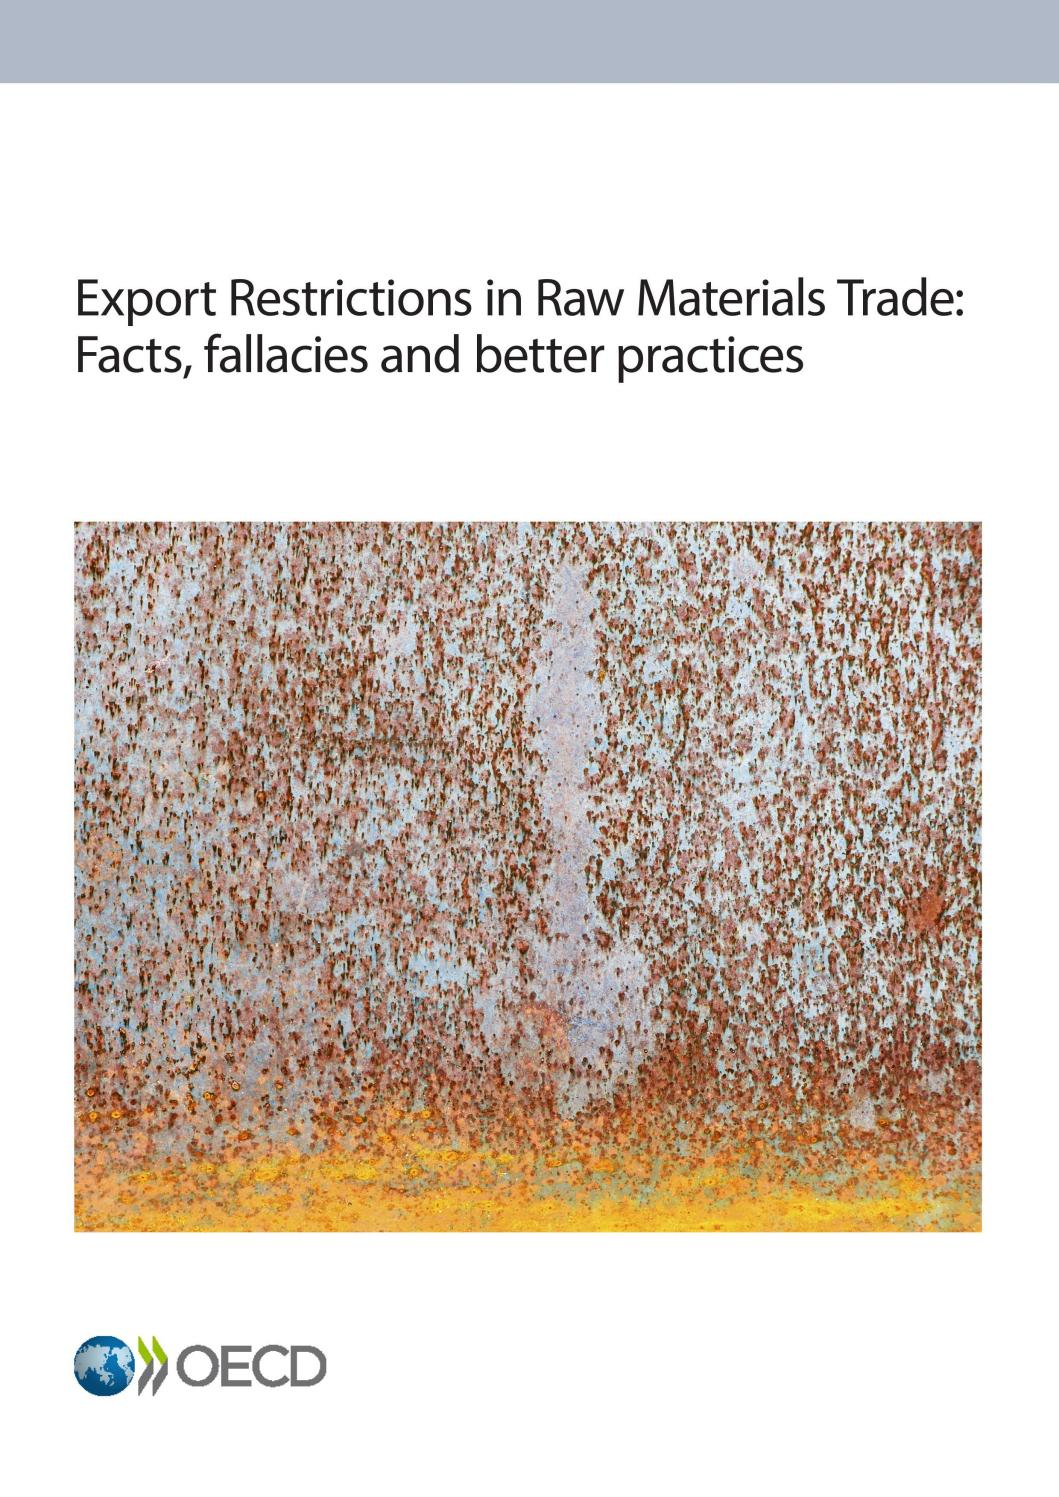 Export Restrictions in Raw Materials Trade: Facts, fallacies and